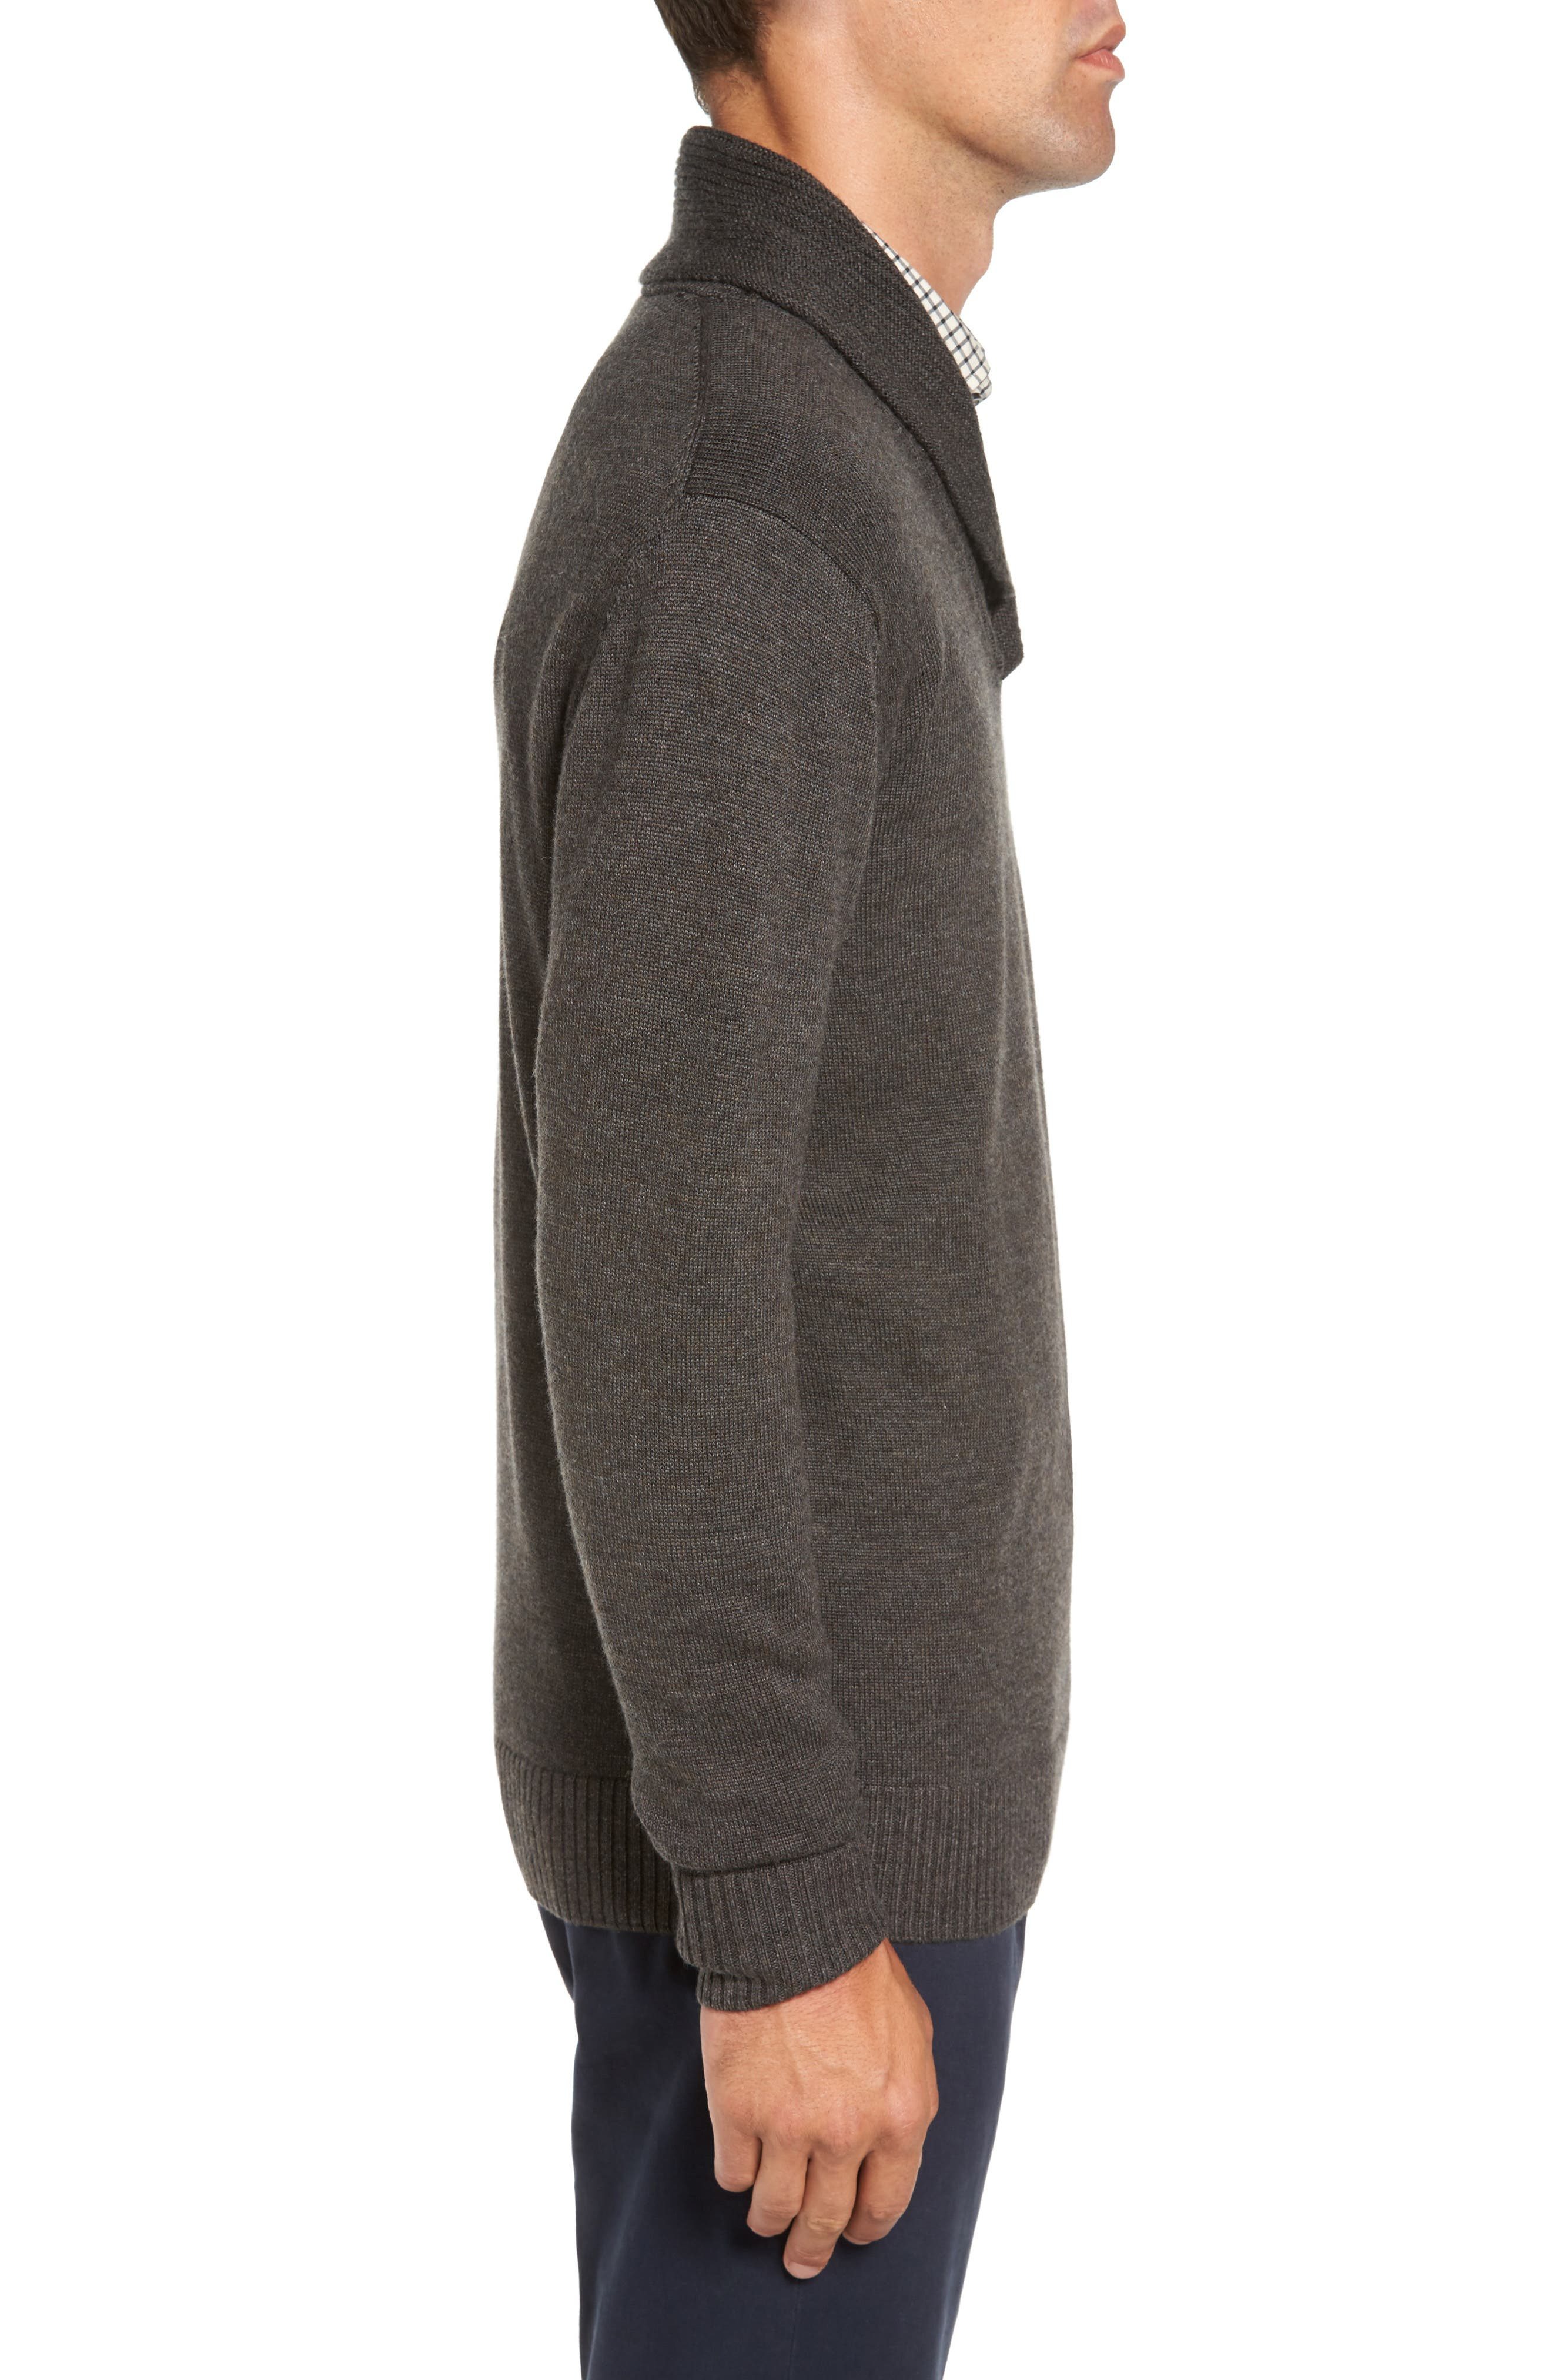 PT Chevalier Shawl Collar Sweater,                             Alternate thumbnail 3, color,                             202